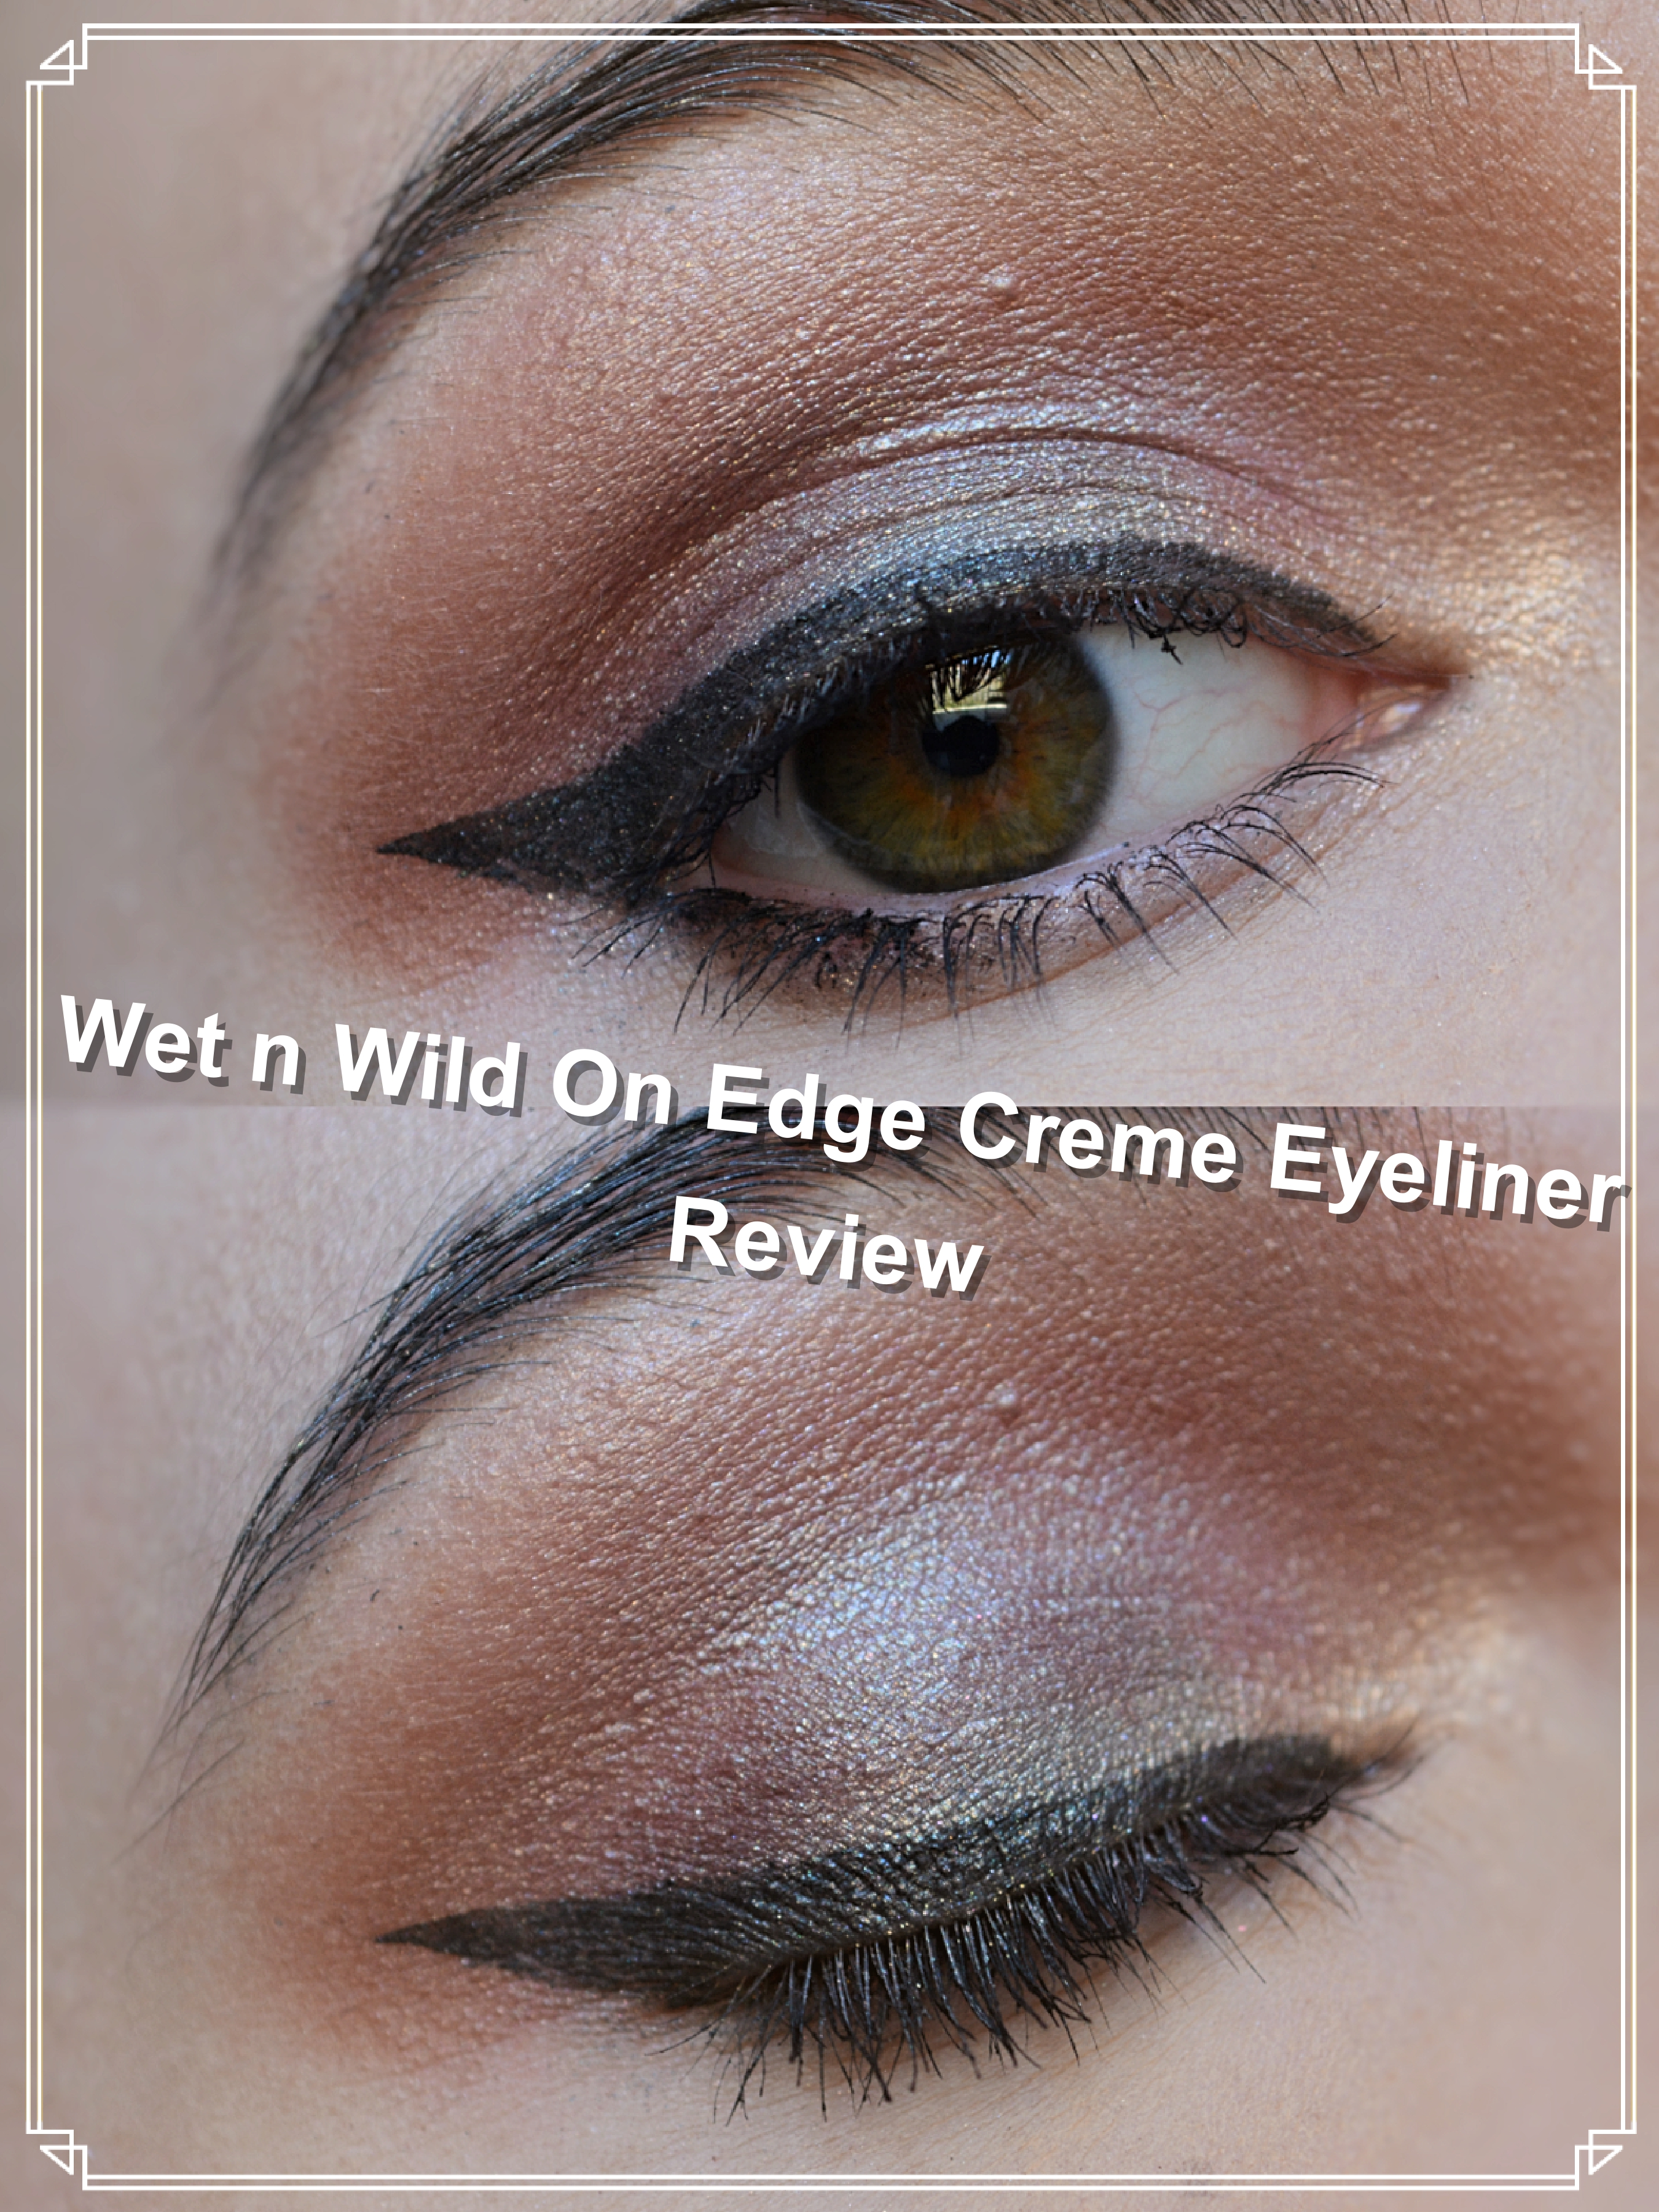 Wet and Wild On Edge Creme Eyeliner Review